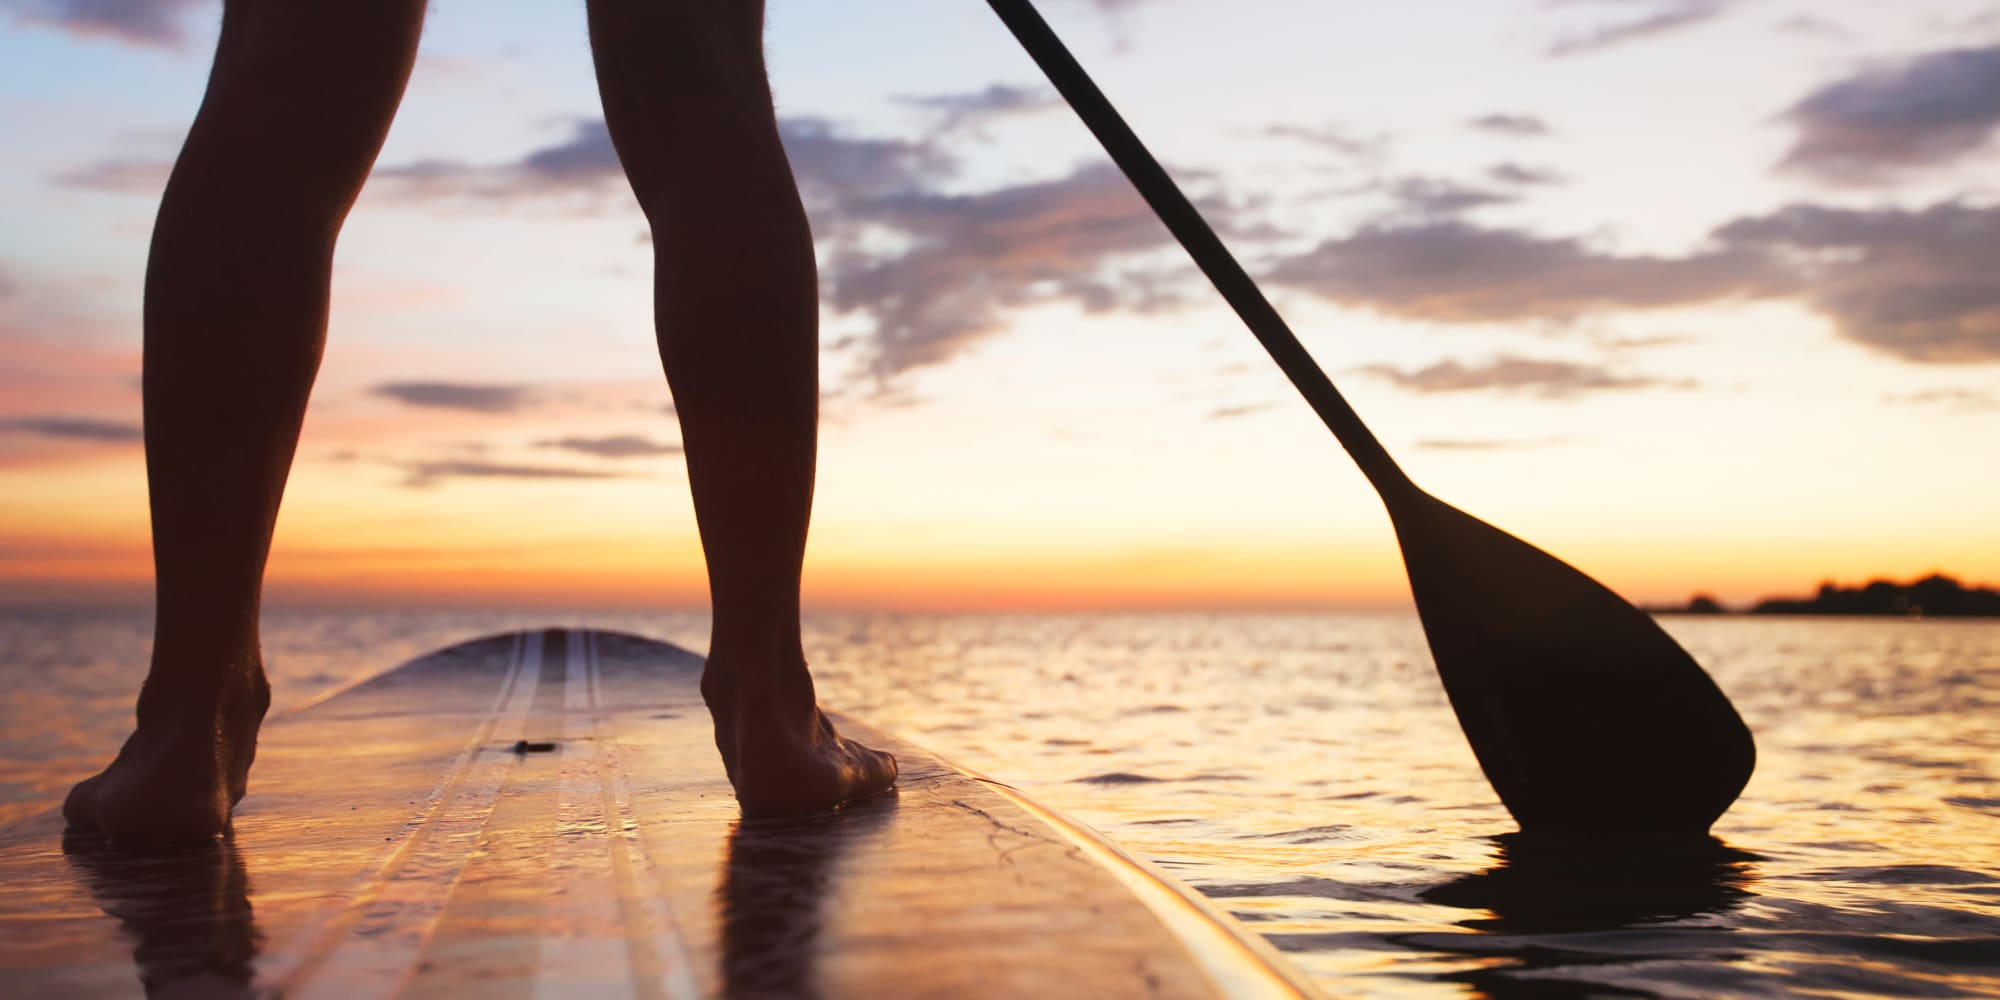 Paddle board in Mulberry, Florida